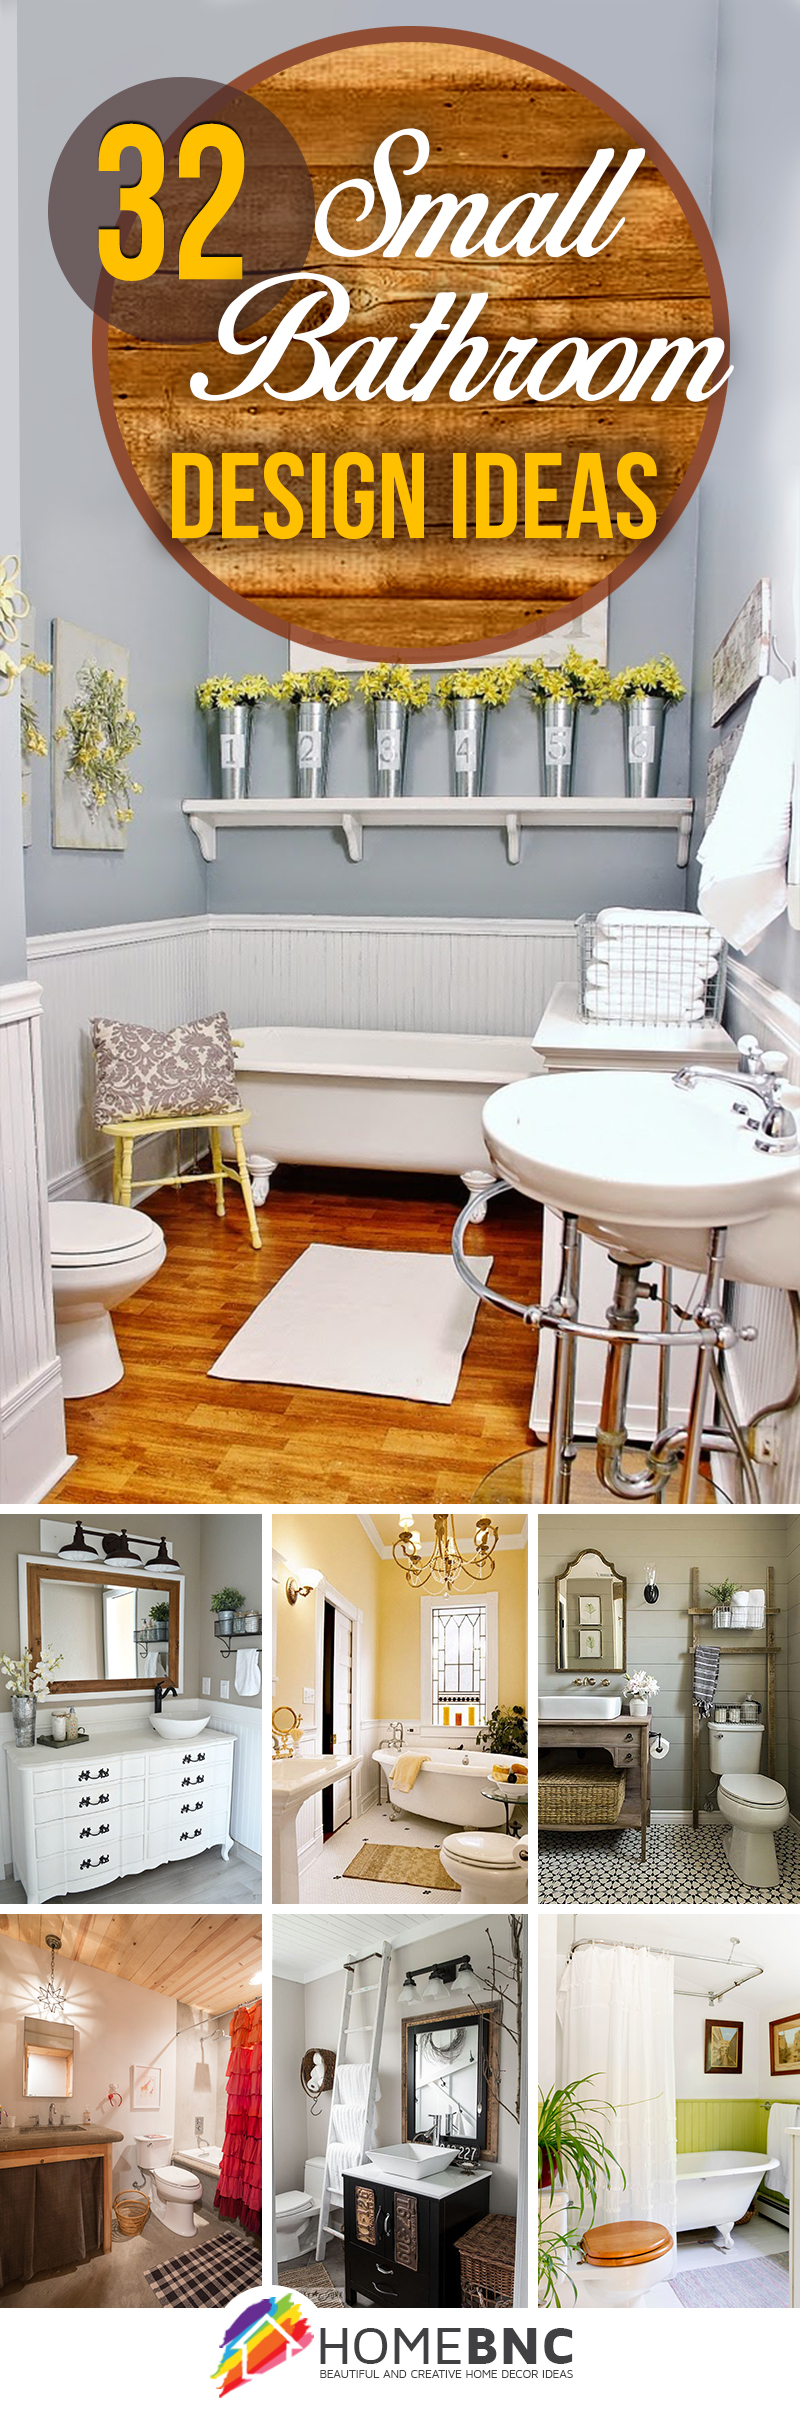 32 Best Small Bathroom Design Ideas and Decorations for 2020 on Small Bathroom Ideas Decor id=55716